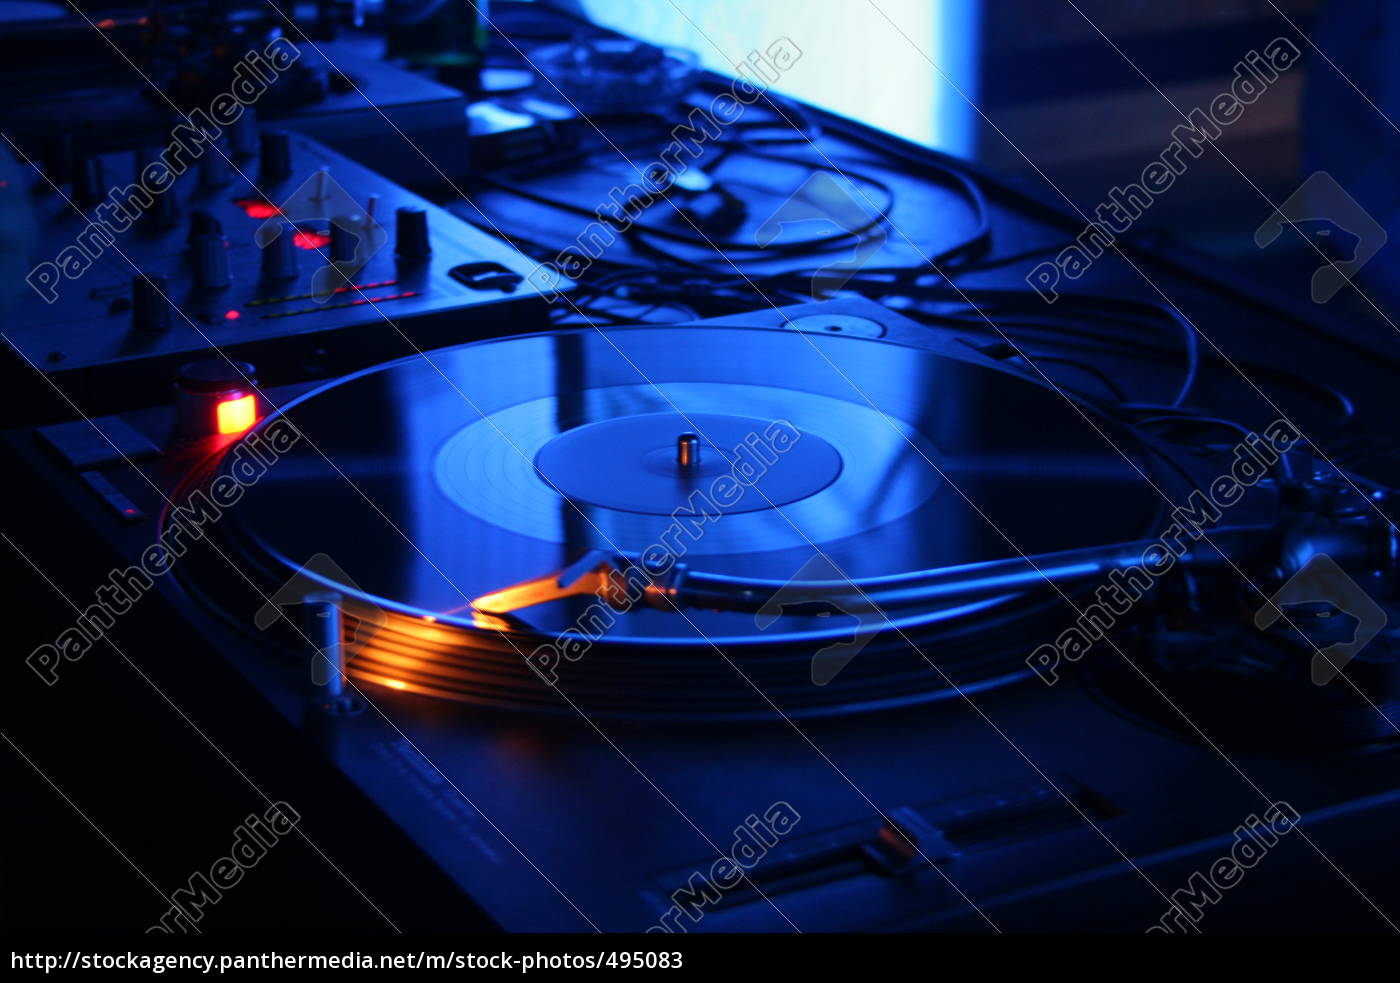 here, is, playing, the, music - 495083